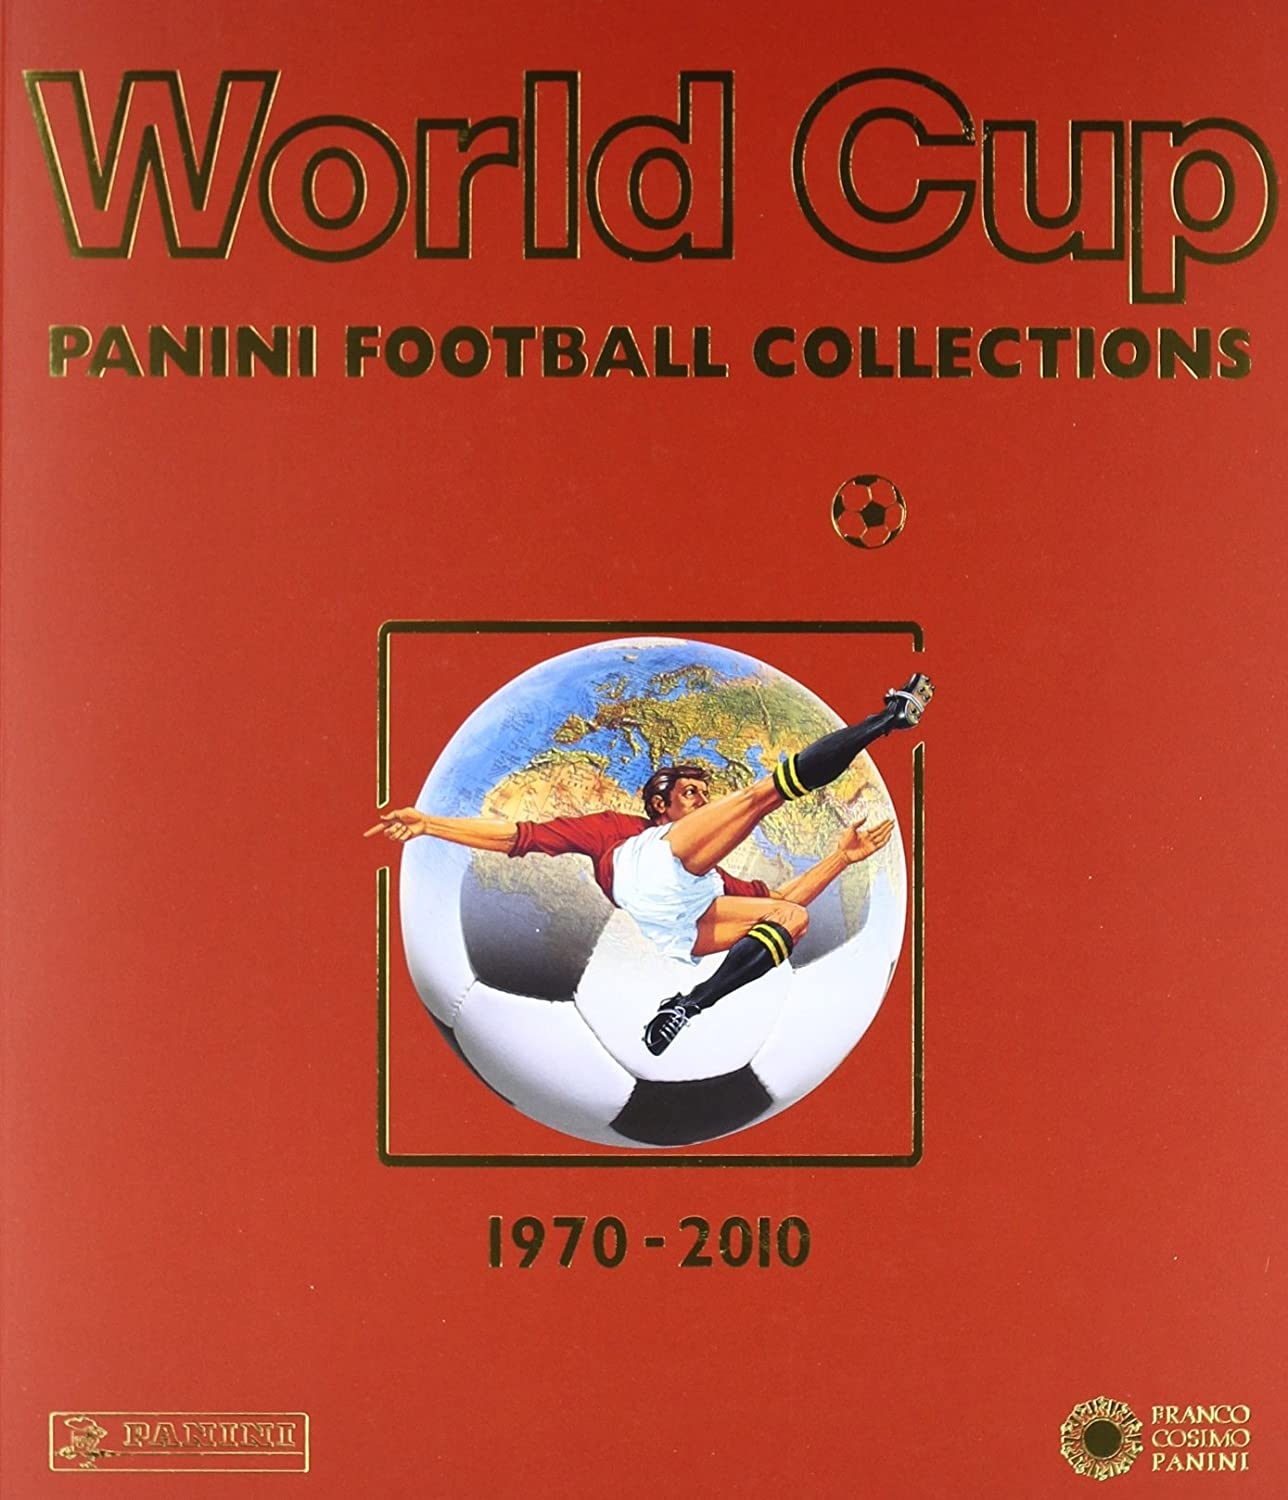 Panini World Cup Football Collections 1970-1990 / 1994-2010 Sammler-Edition (Mehrsprachig)